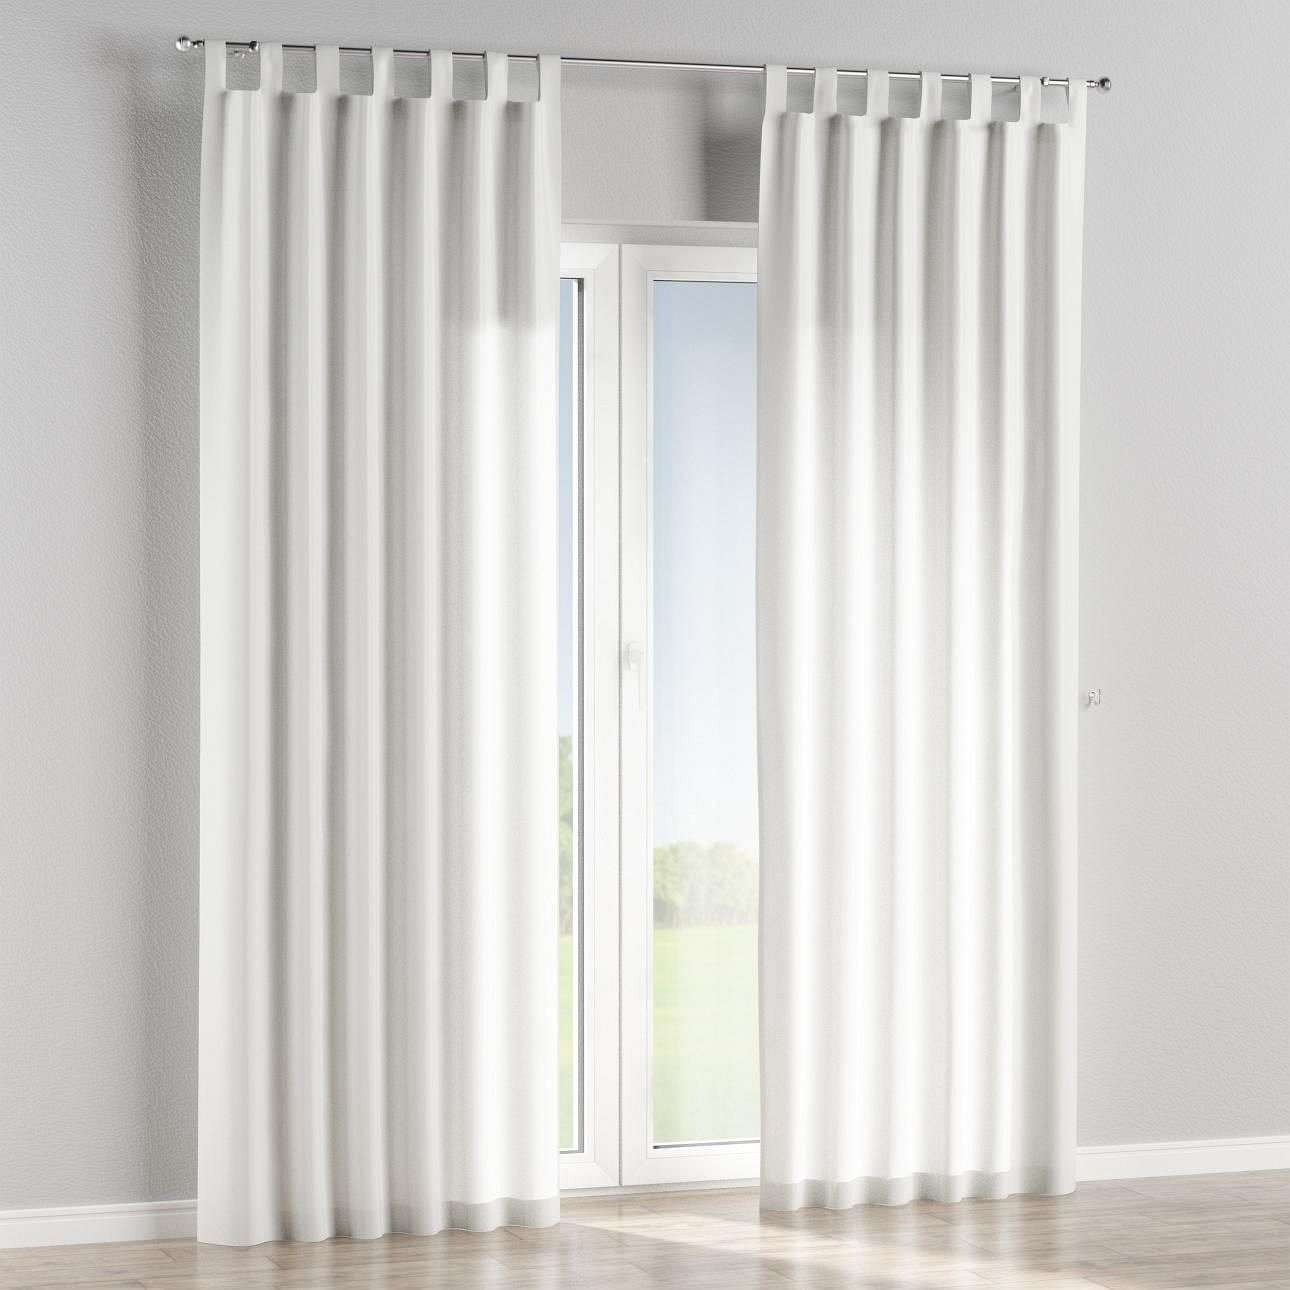 Tab top lined curtains in collection Arcana, fabric: 102-02